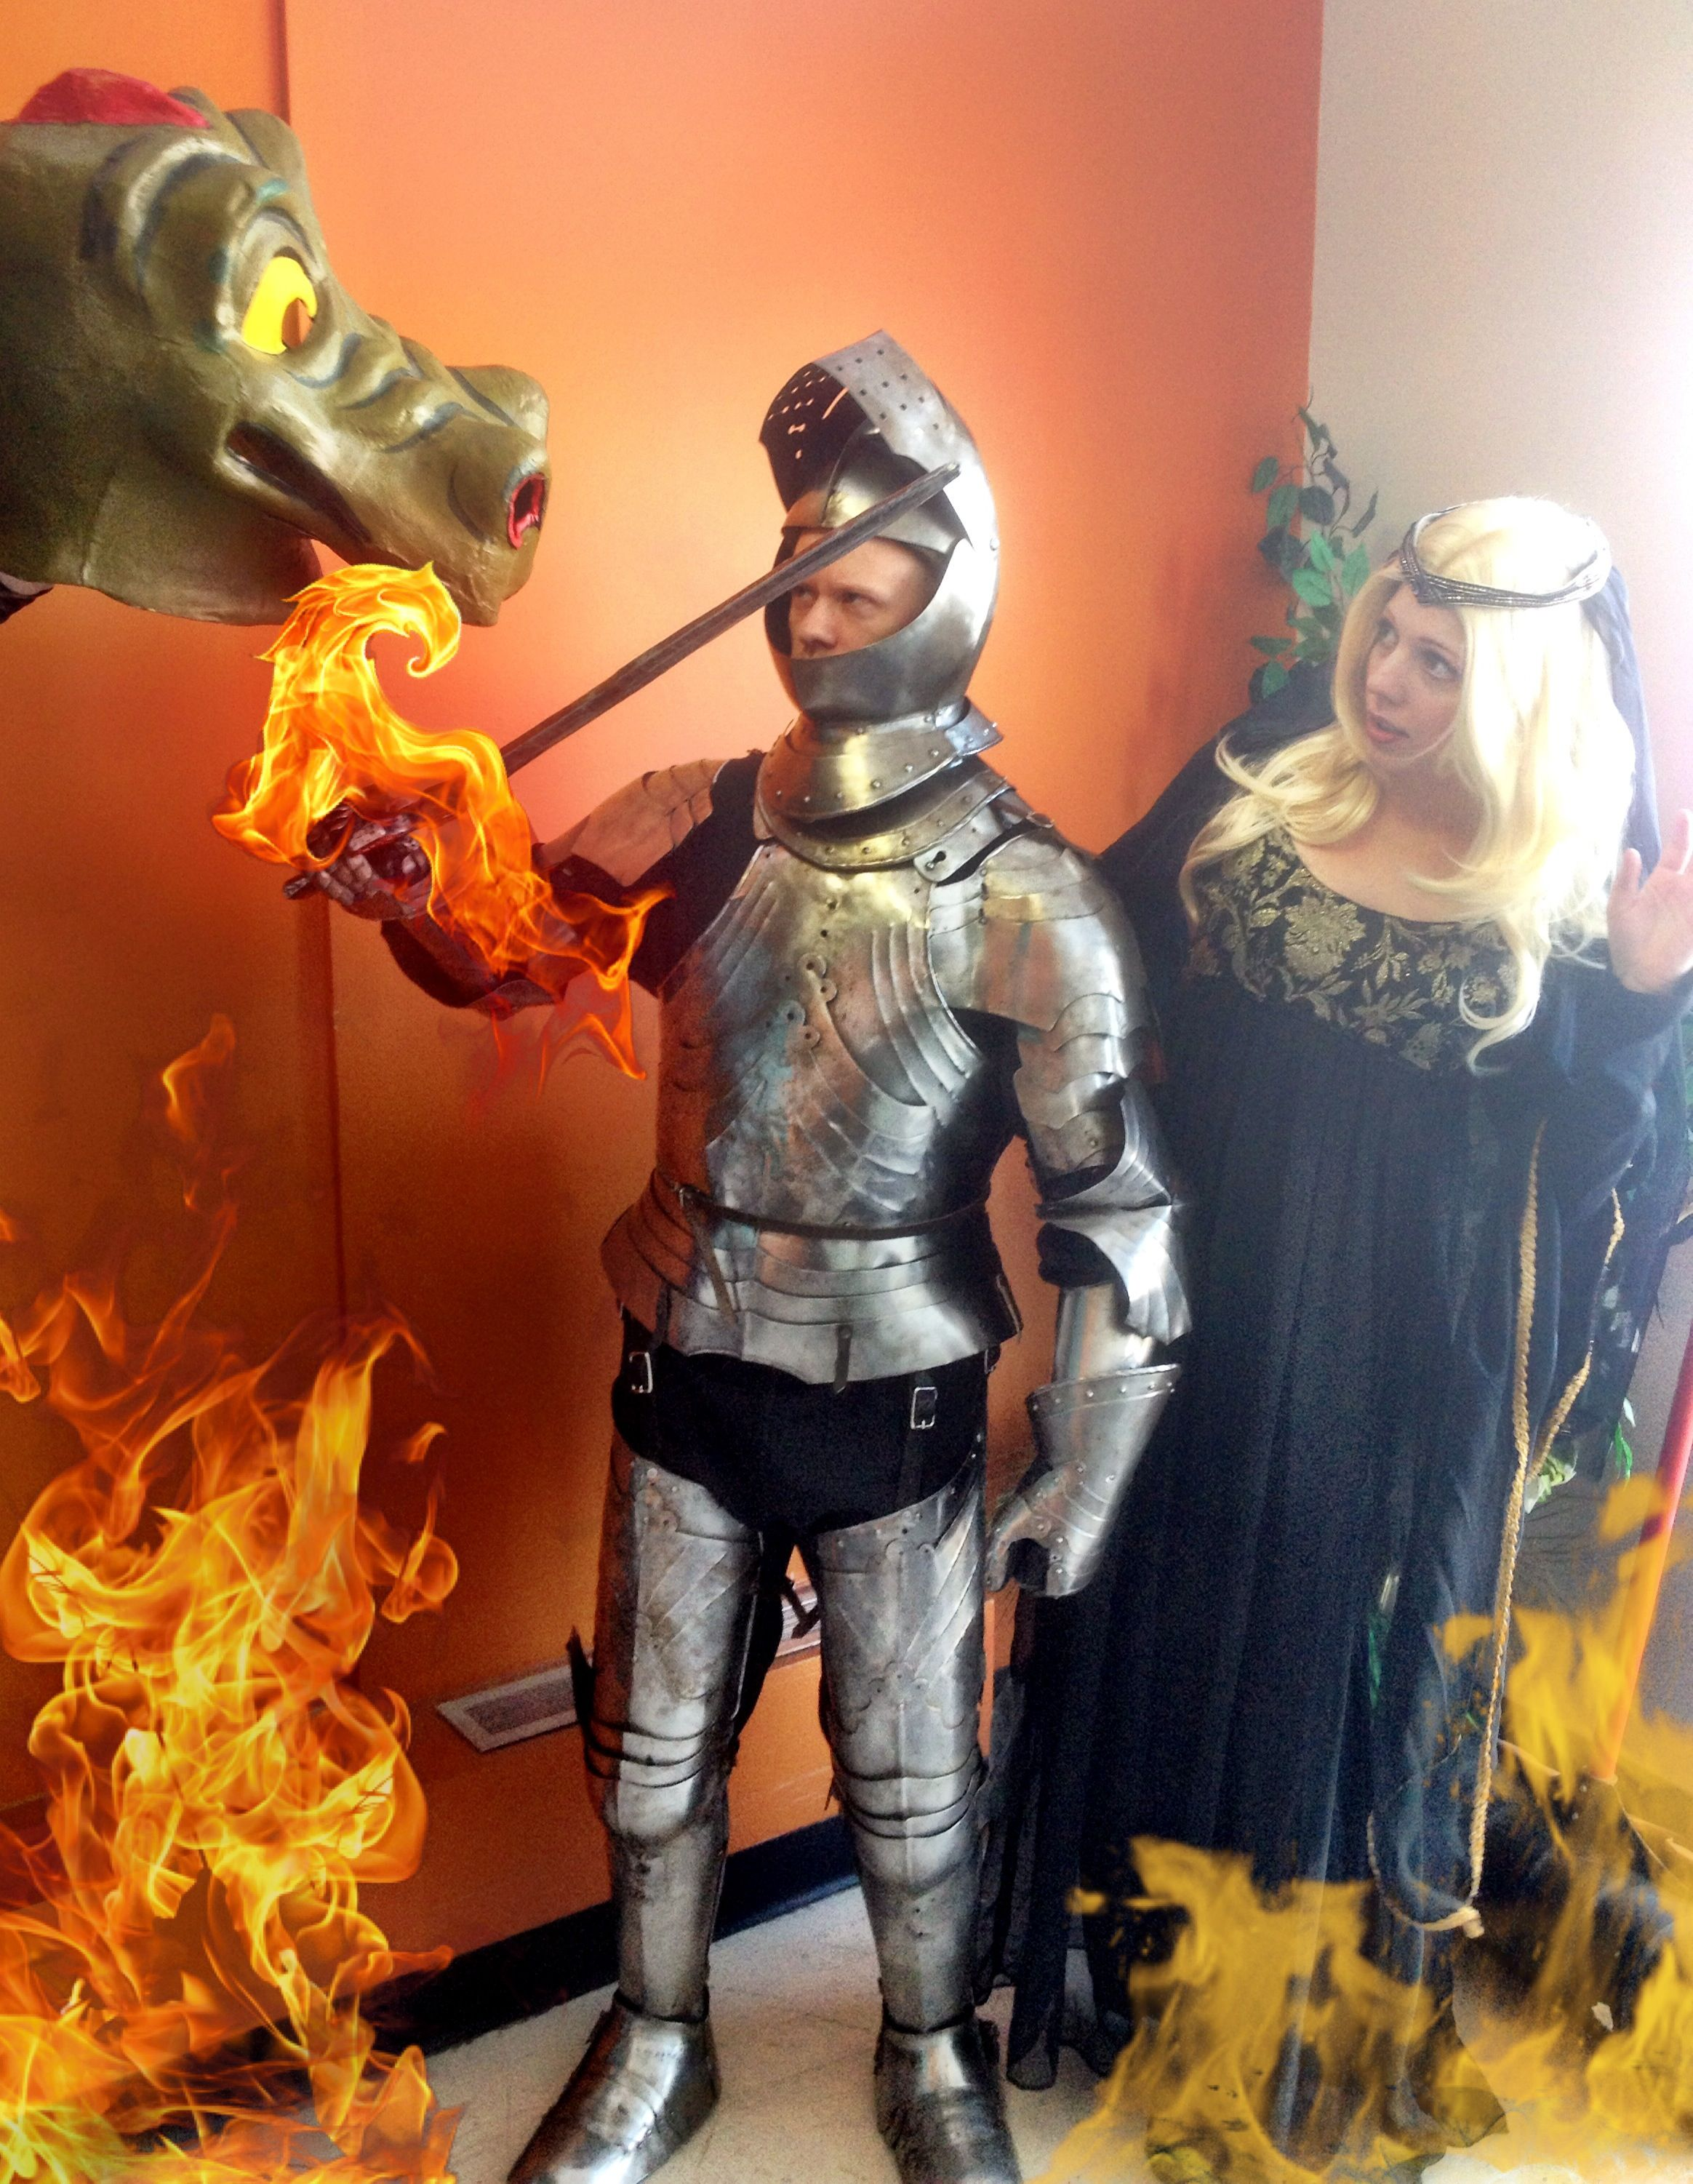 knight in shining armour rescues the damsel in distress